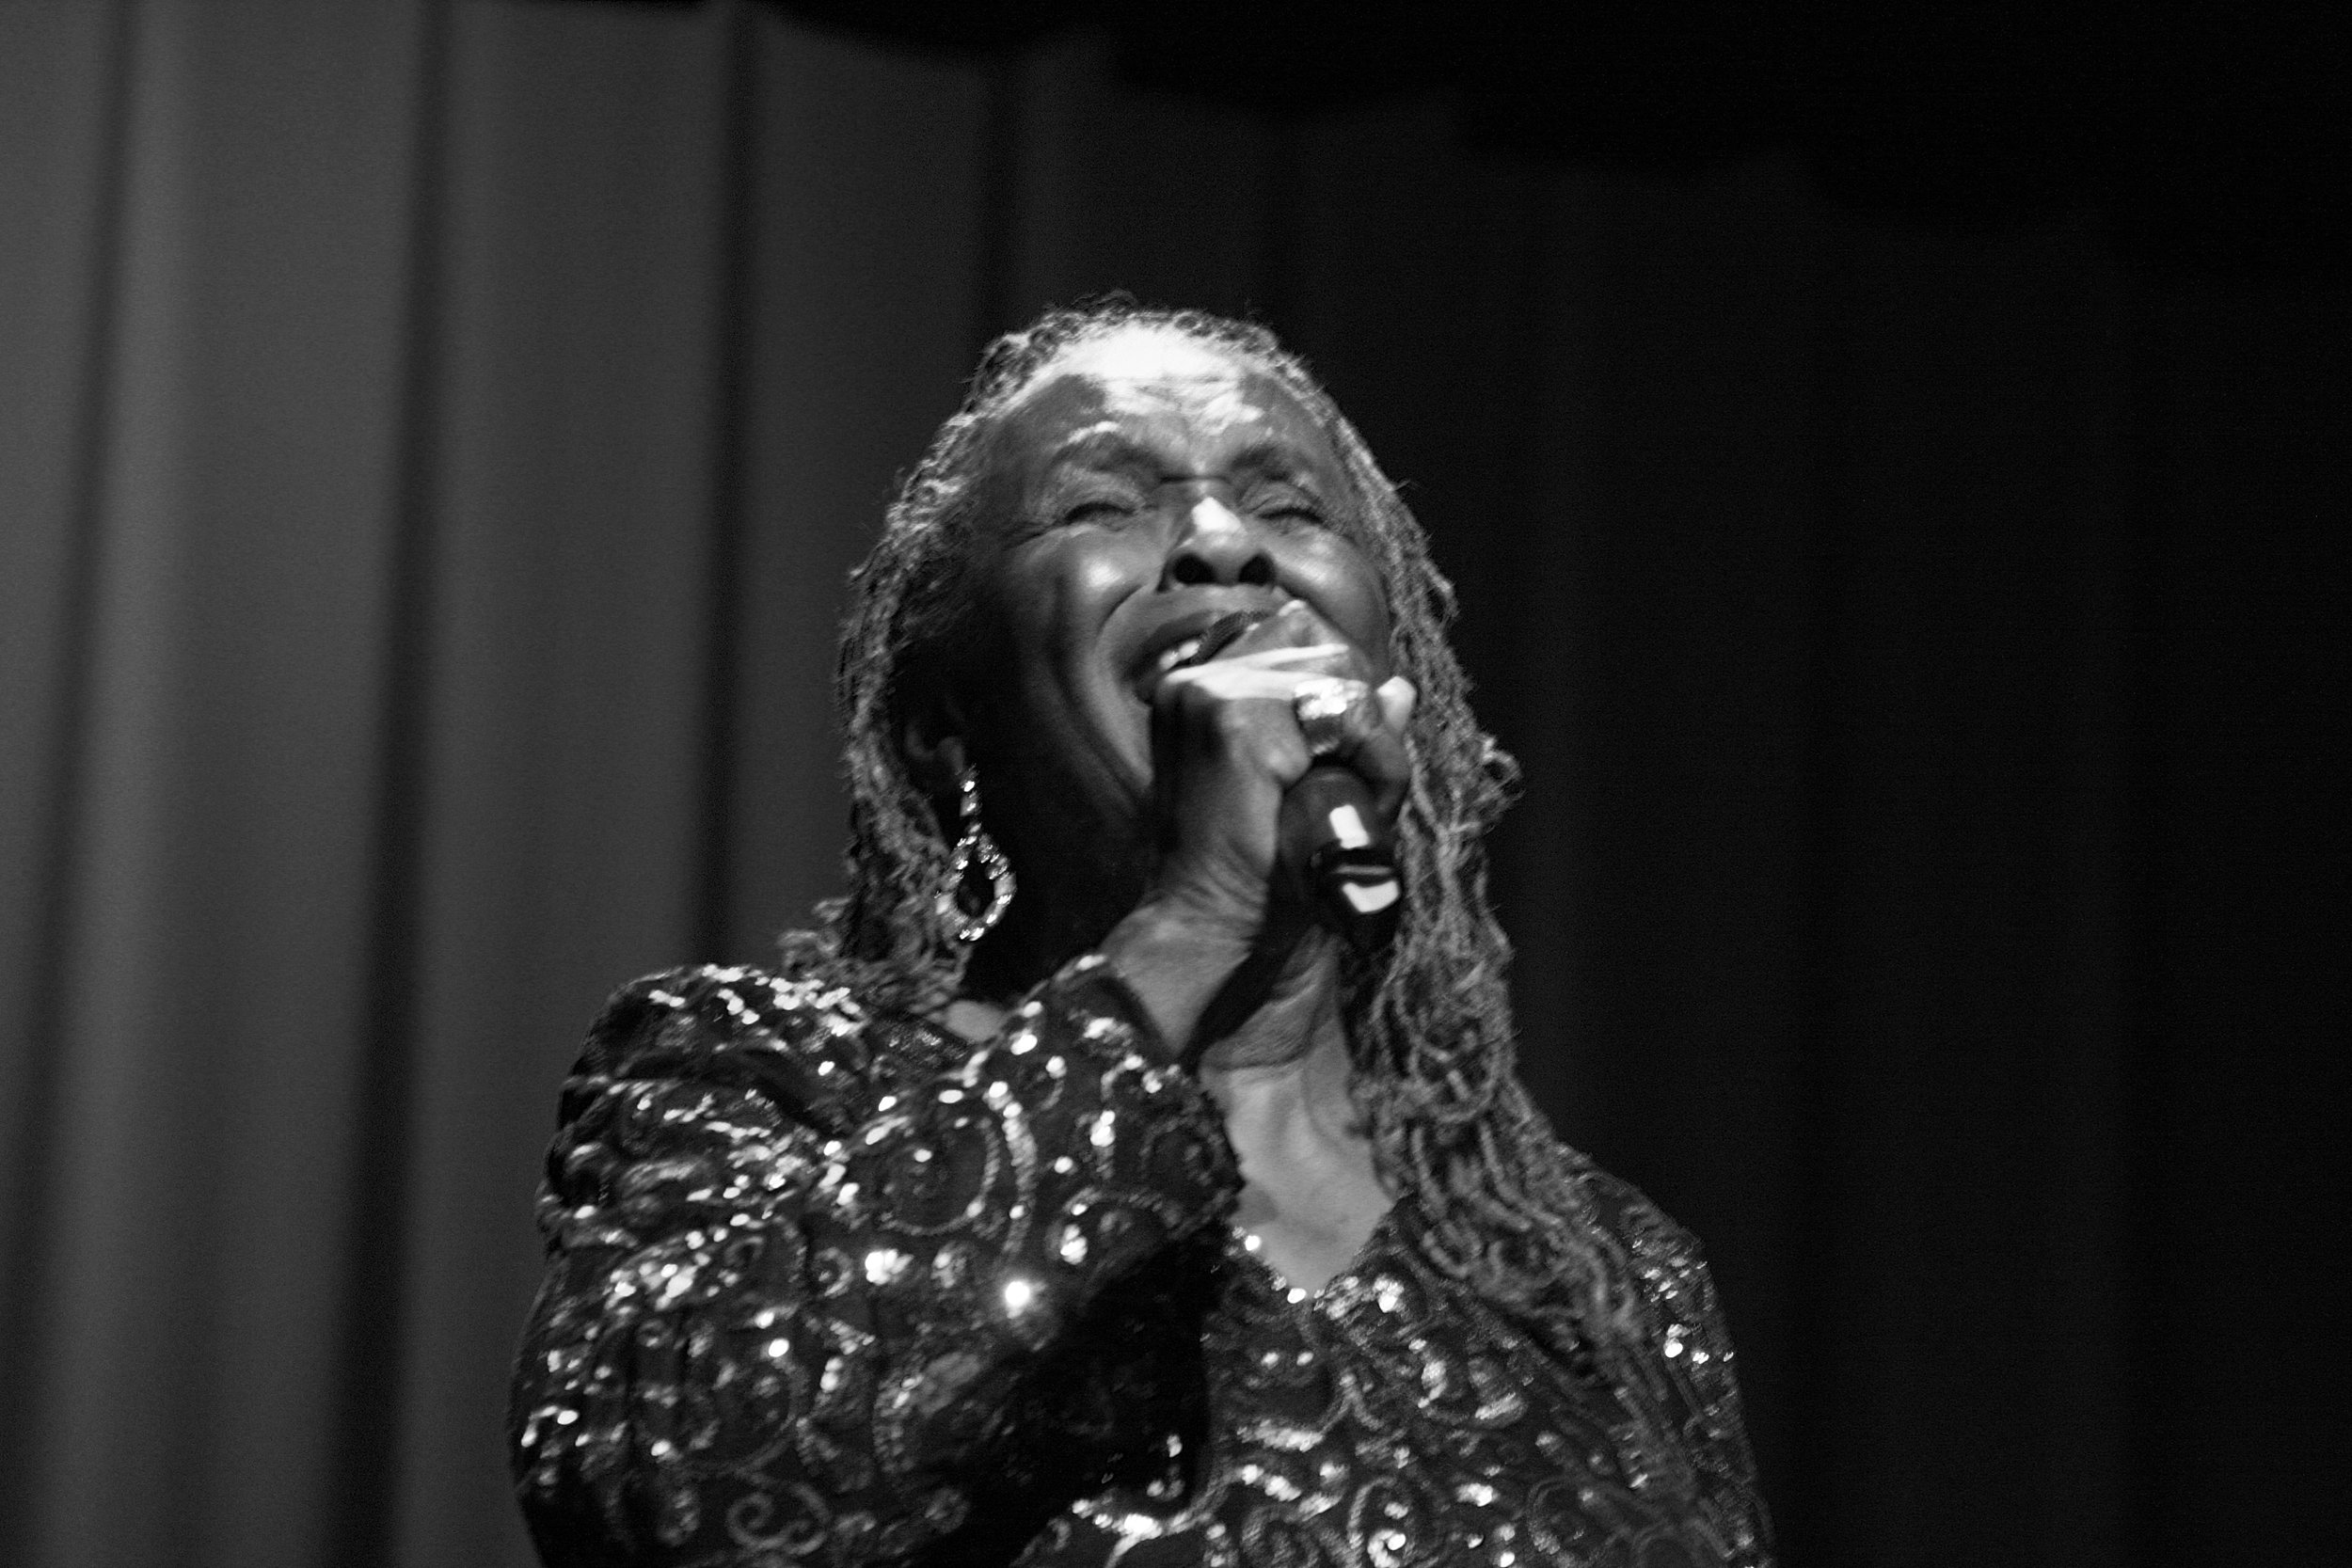 franklin tribute singer in black and white.jpg